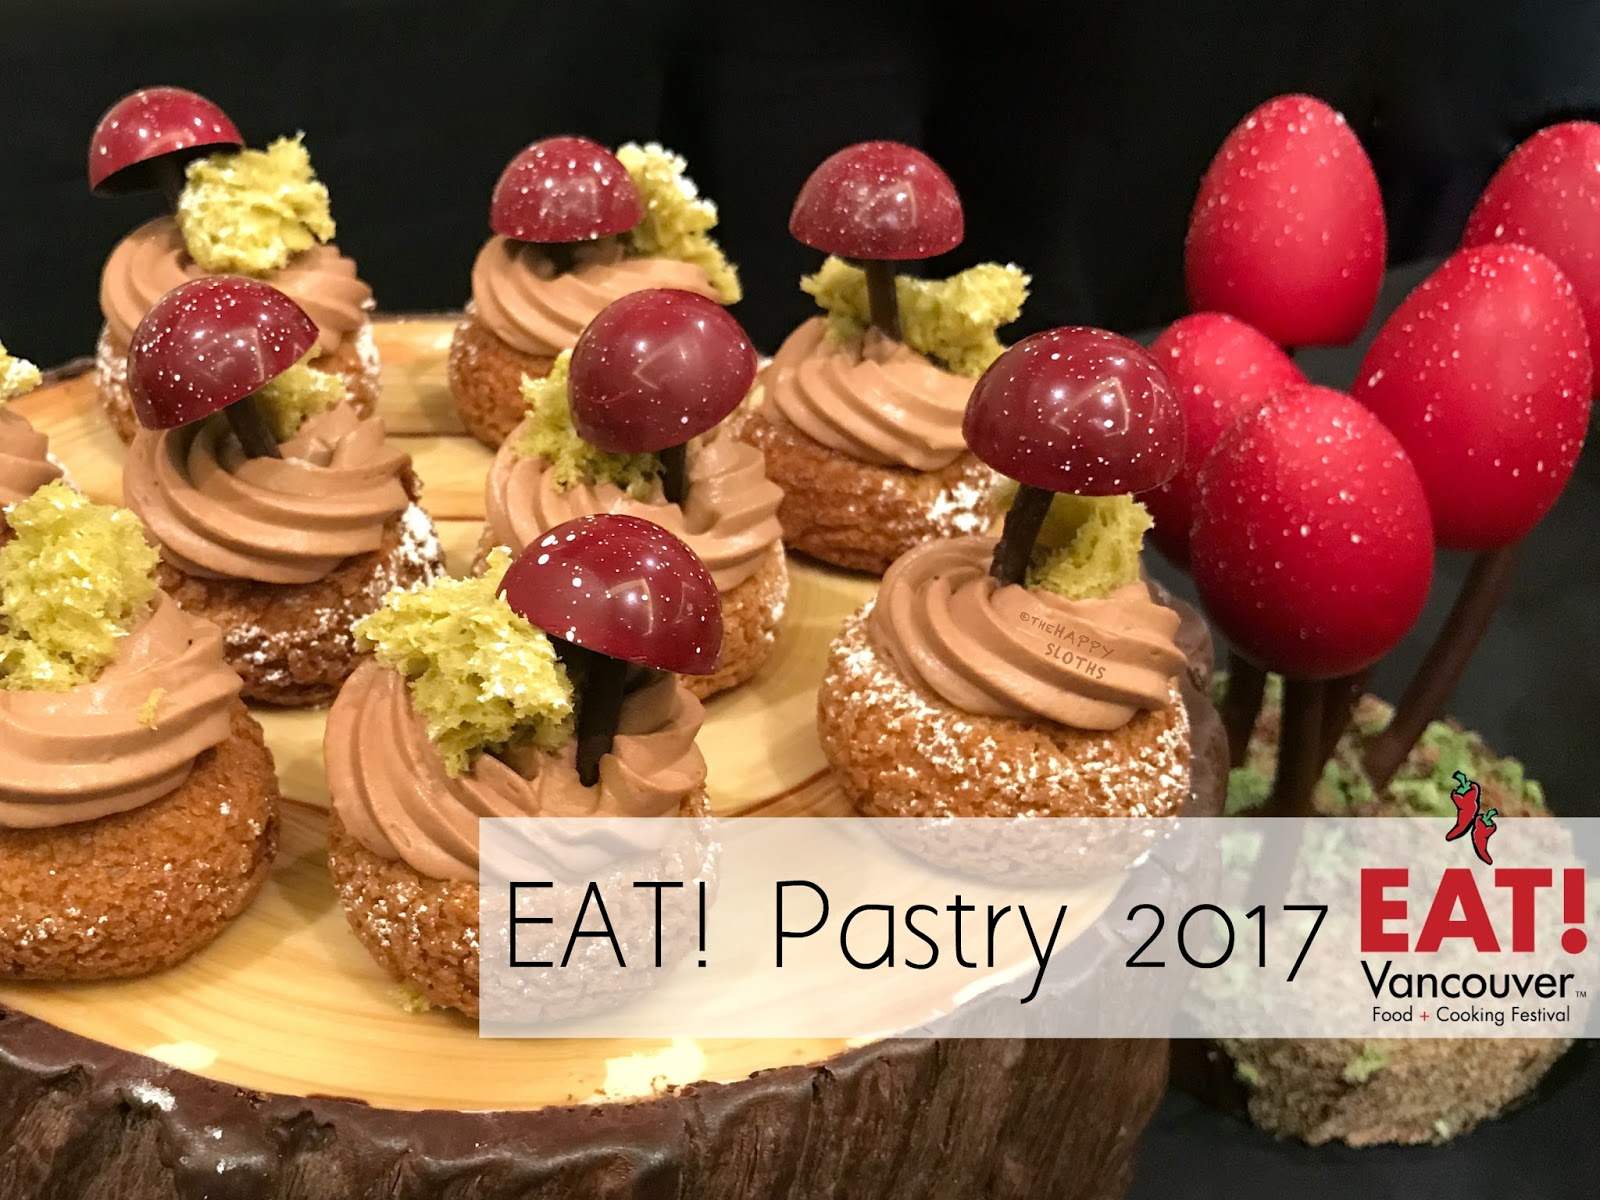 Eat! Vancouver 2017 | EAT! Pastry Event